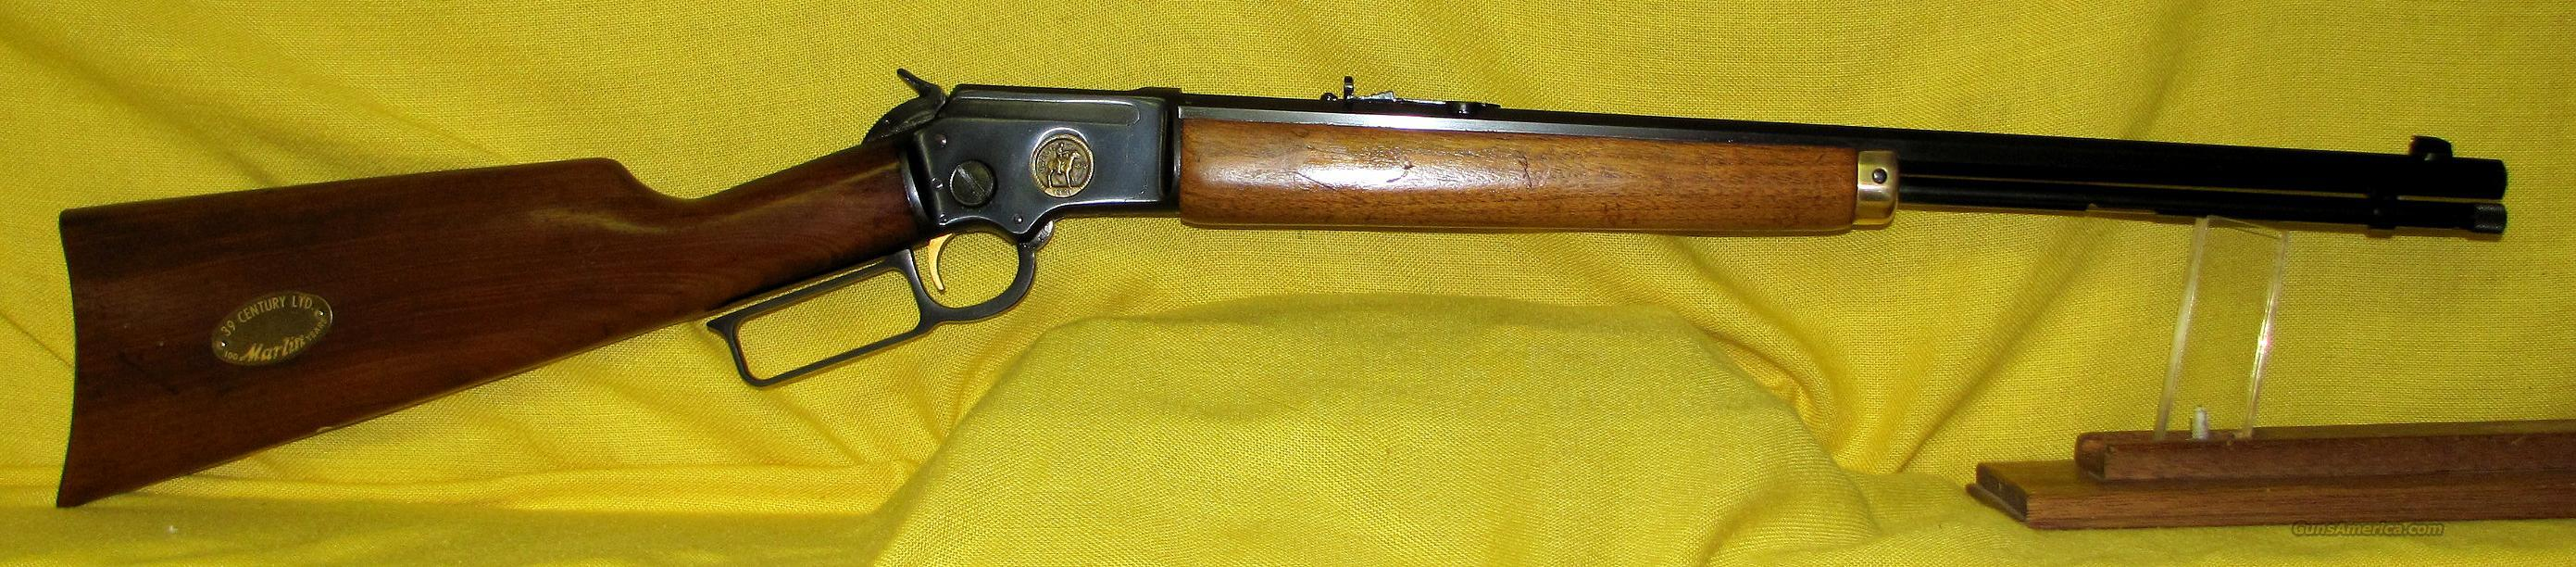 MARLIN 39 ( CENTURY LTD COMMEMORATIVE )  Guns > Rifles > Marlin Rifles > Modern > Lever Action